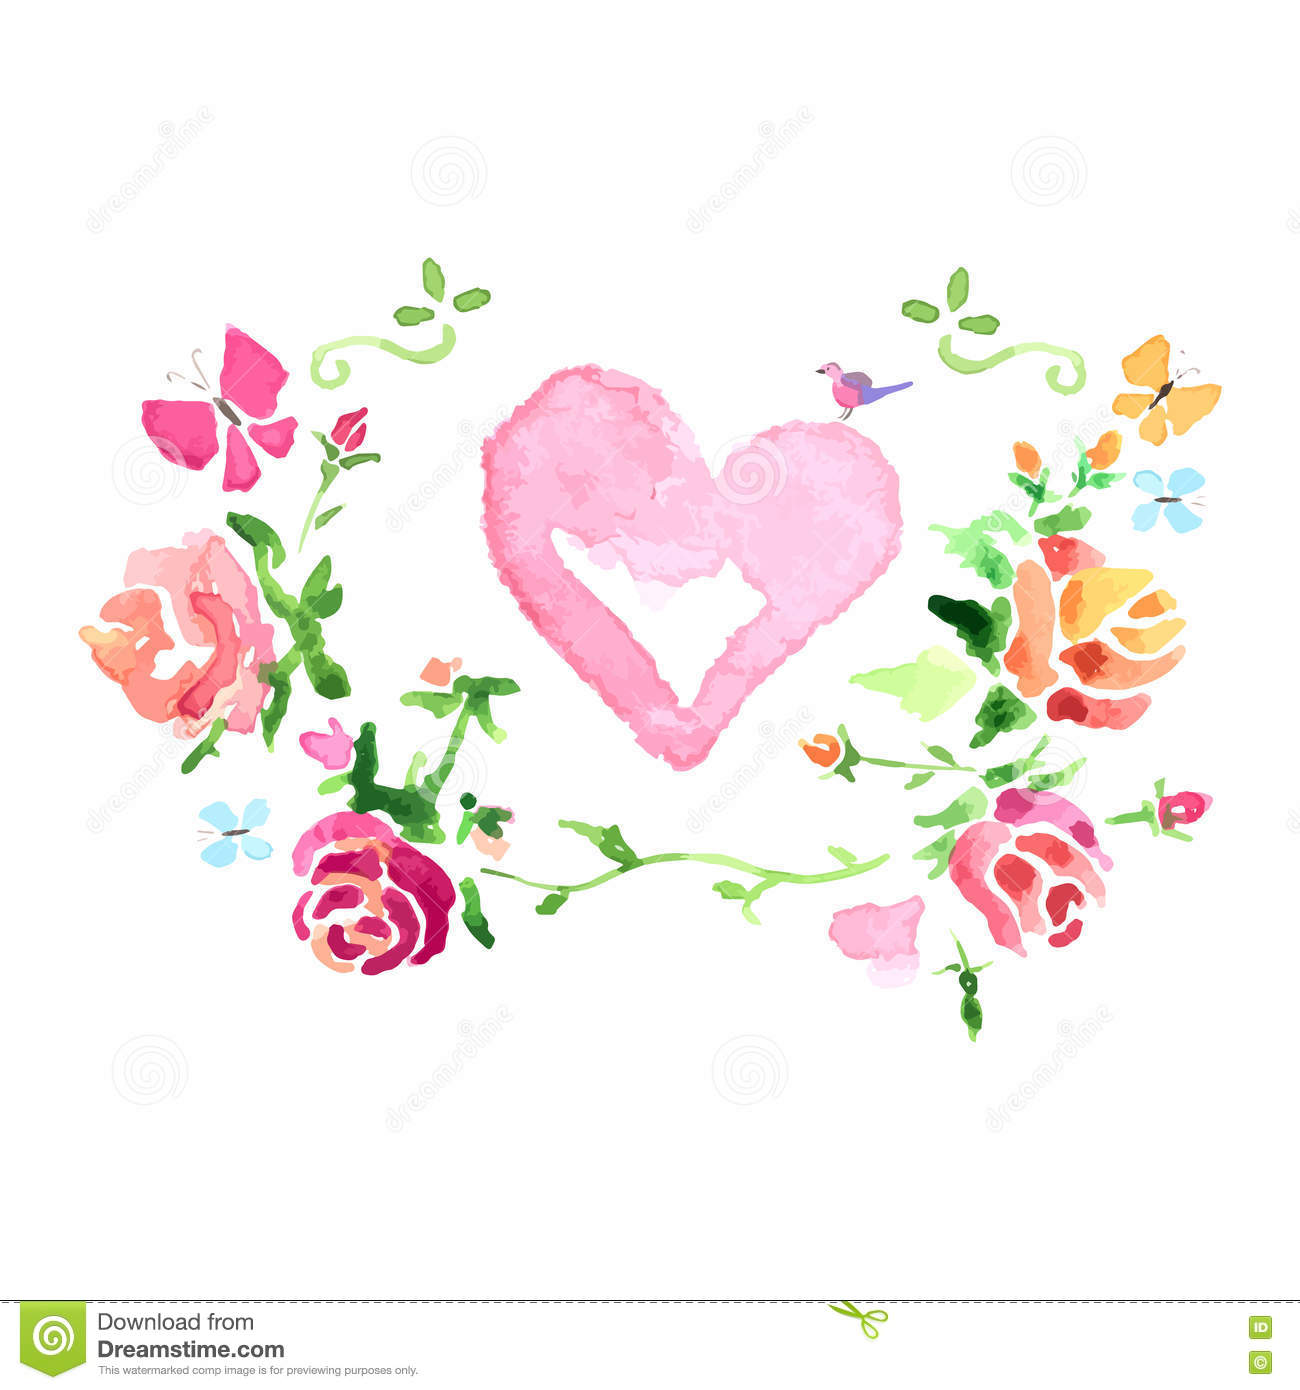 Watercolor Colorful Floral Roses Heart Royalty-Free Stock